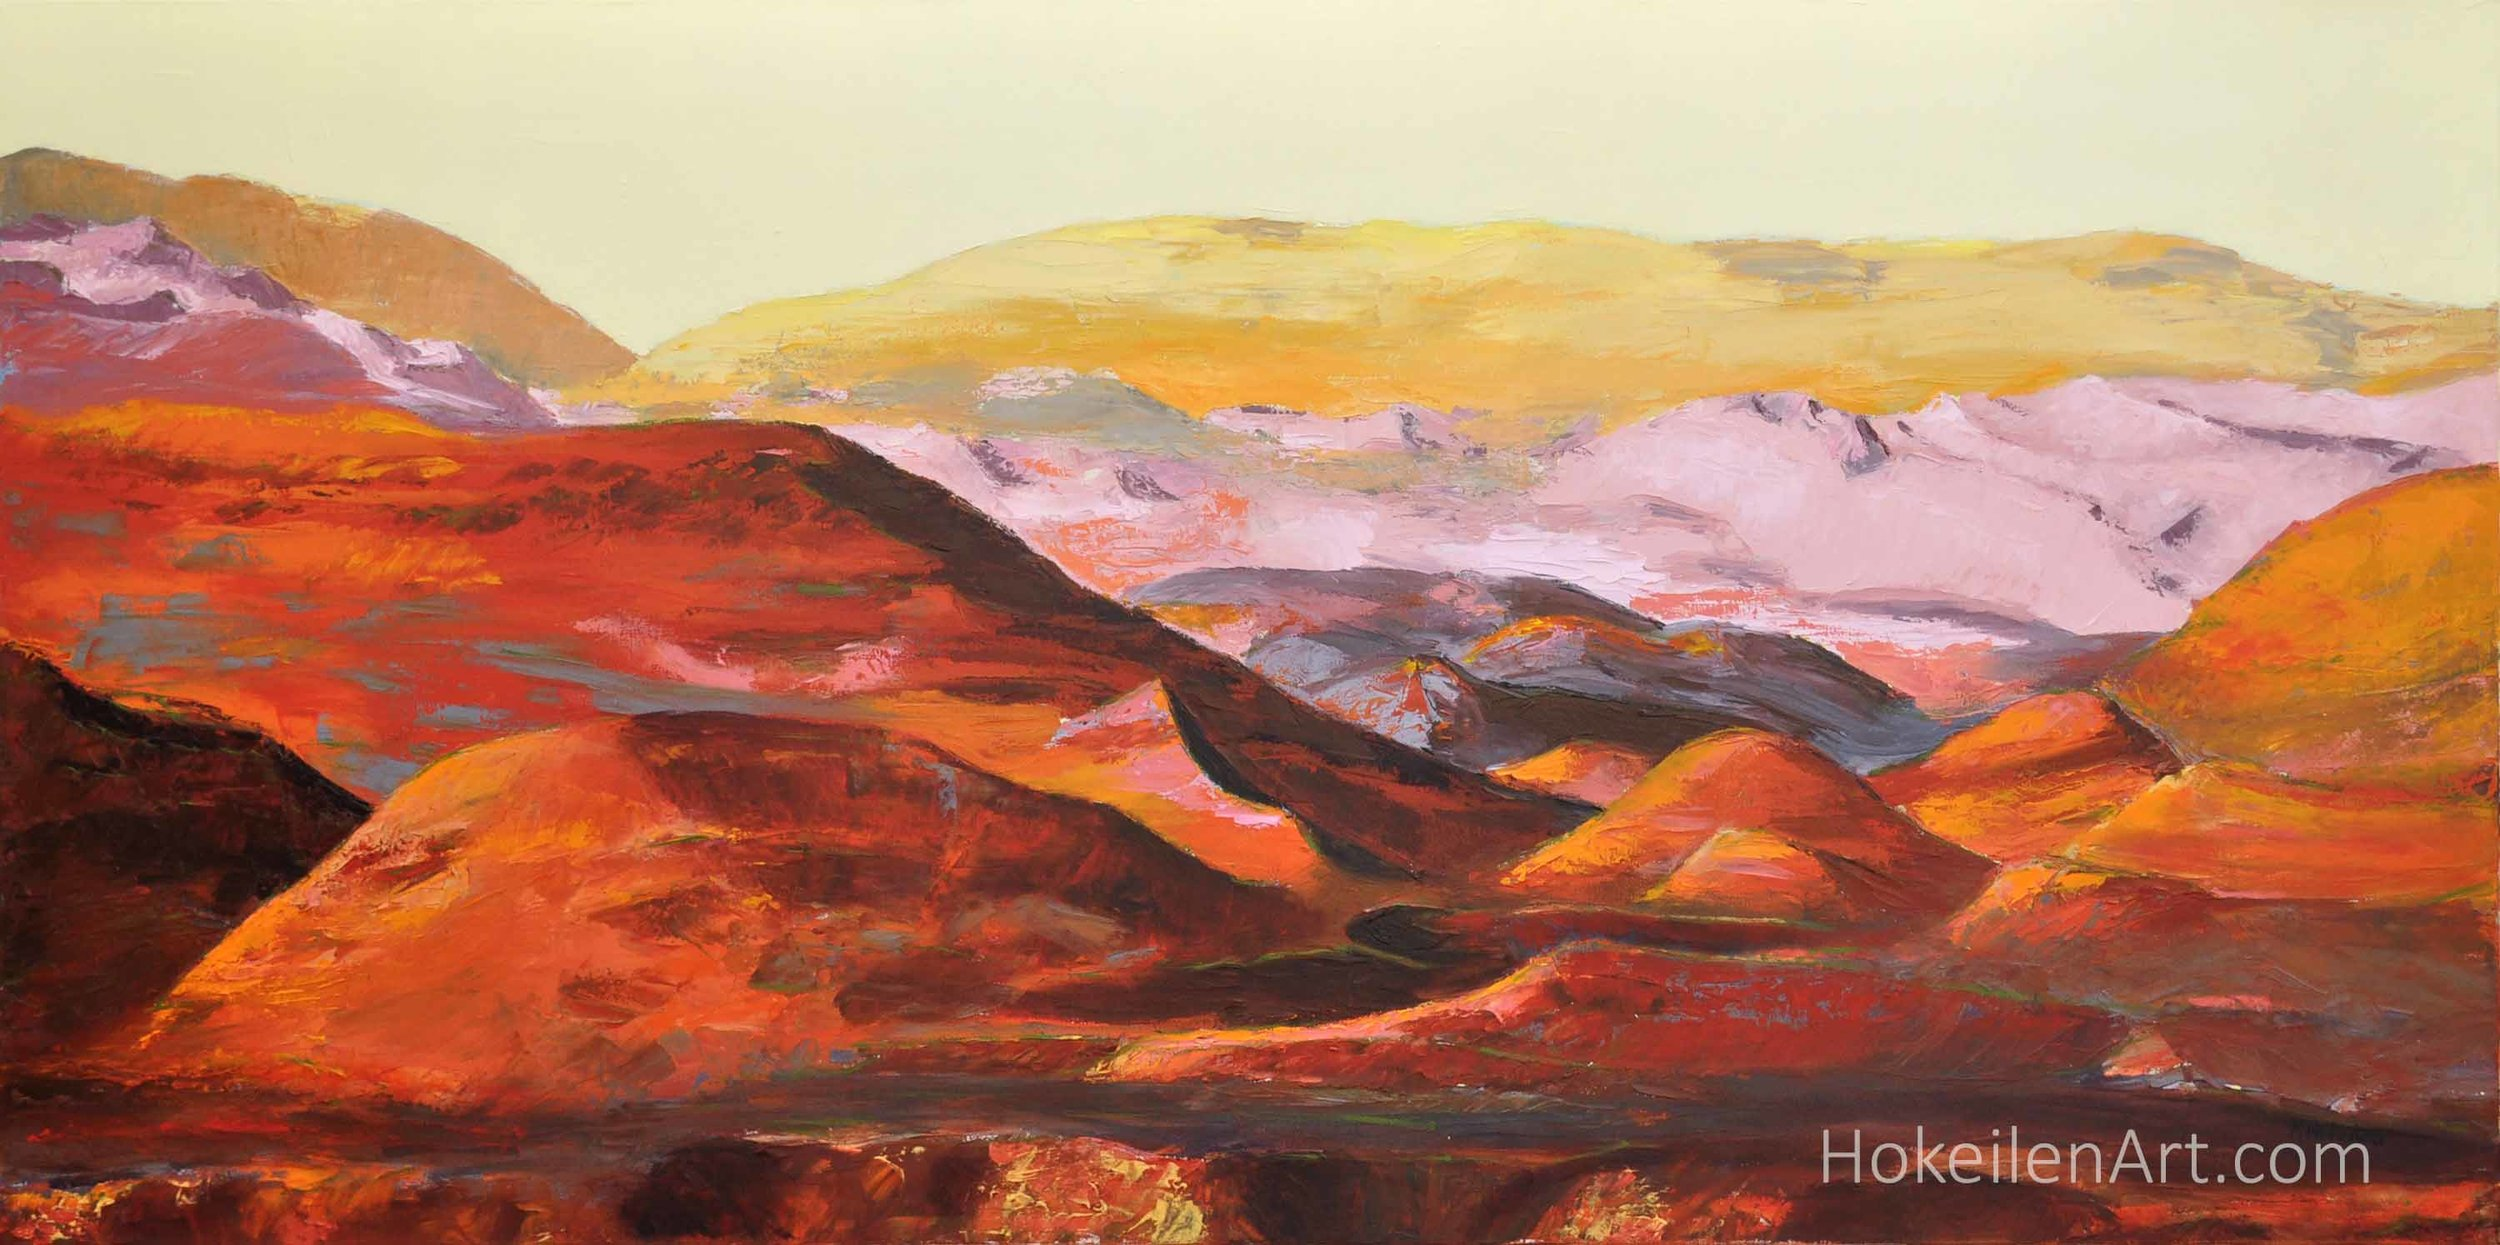 "If These Hills Could Talk by Monica Hokeilen, oil on canvas, 24""x48"""